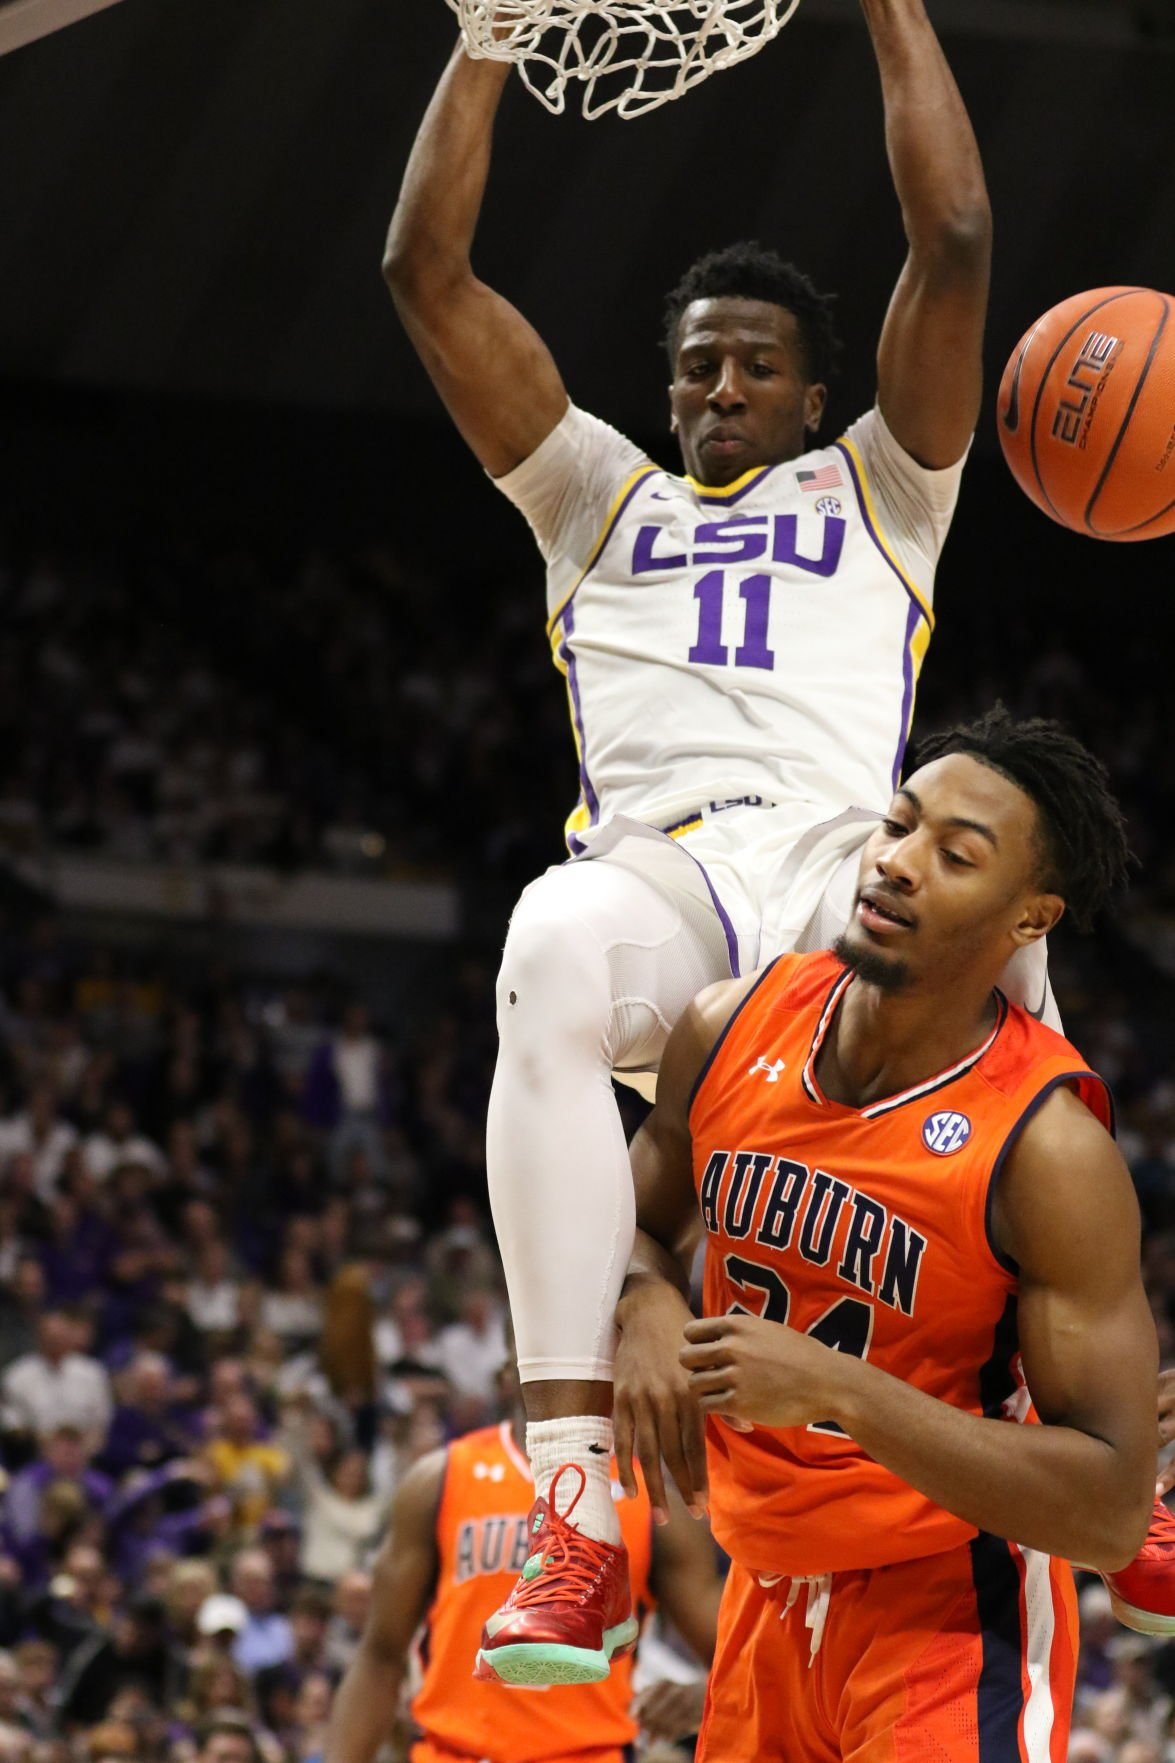 LSU's Kavell Bigby-Williams (11) gets a slam vs. Auburn